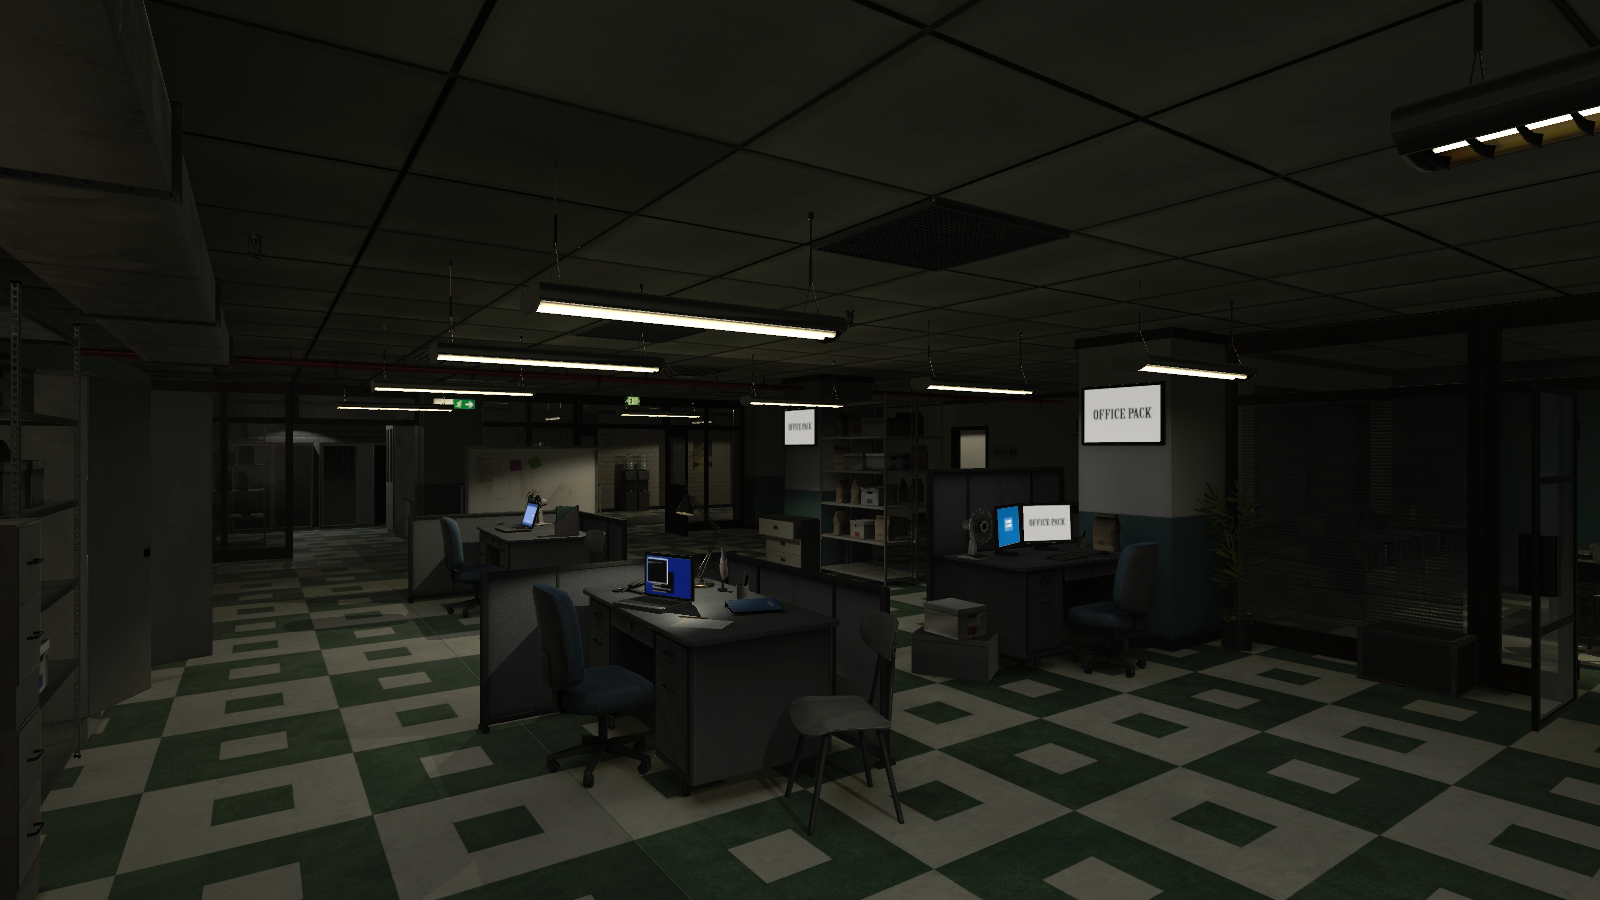 Offices_2.png